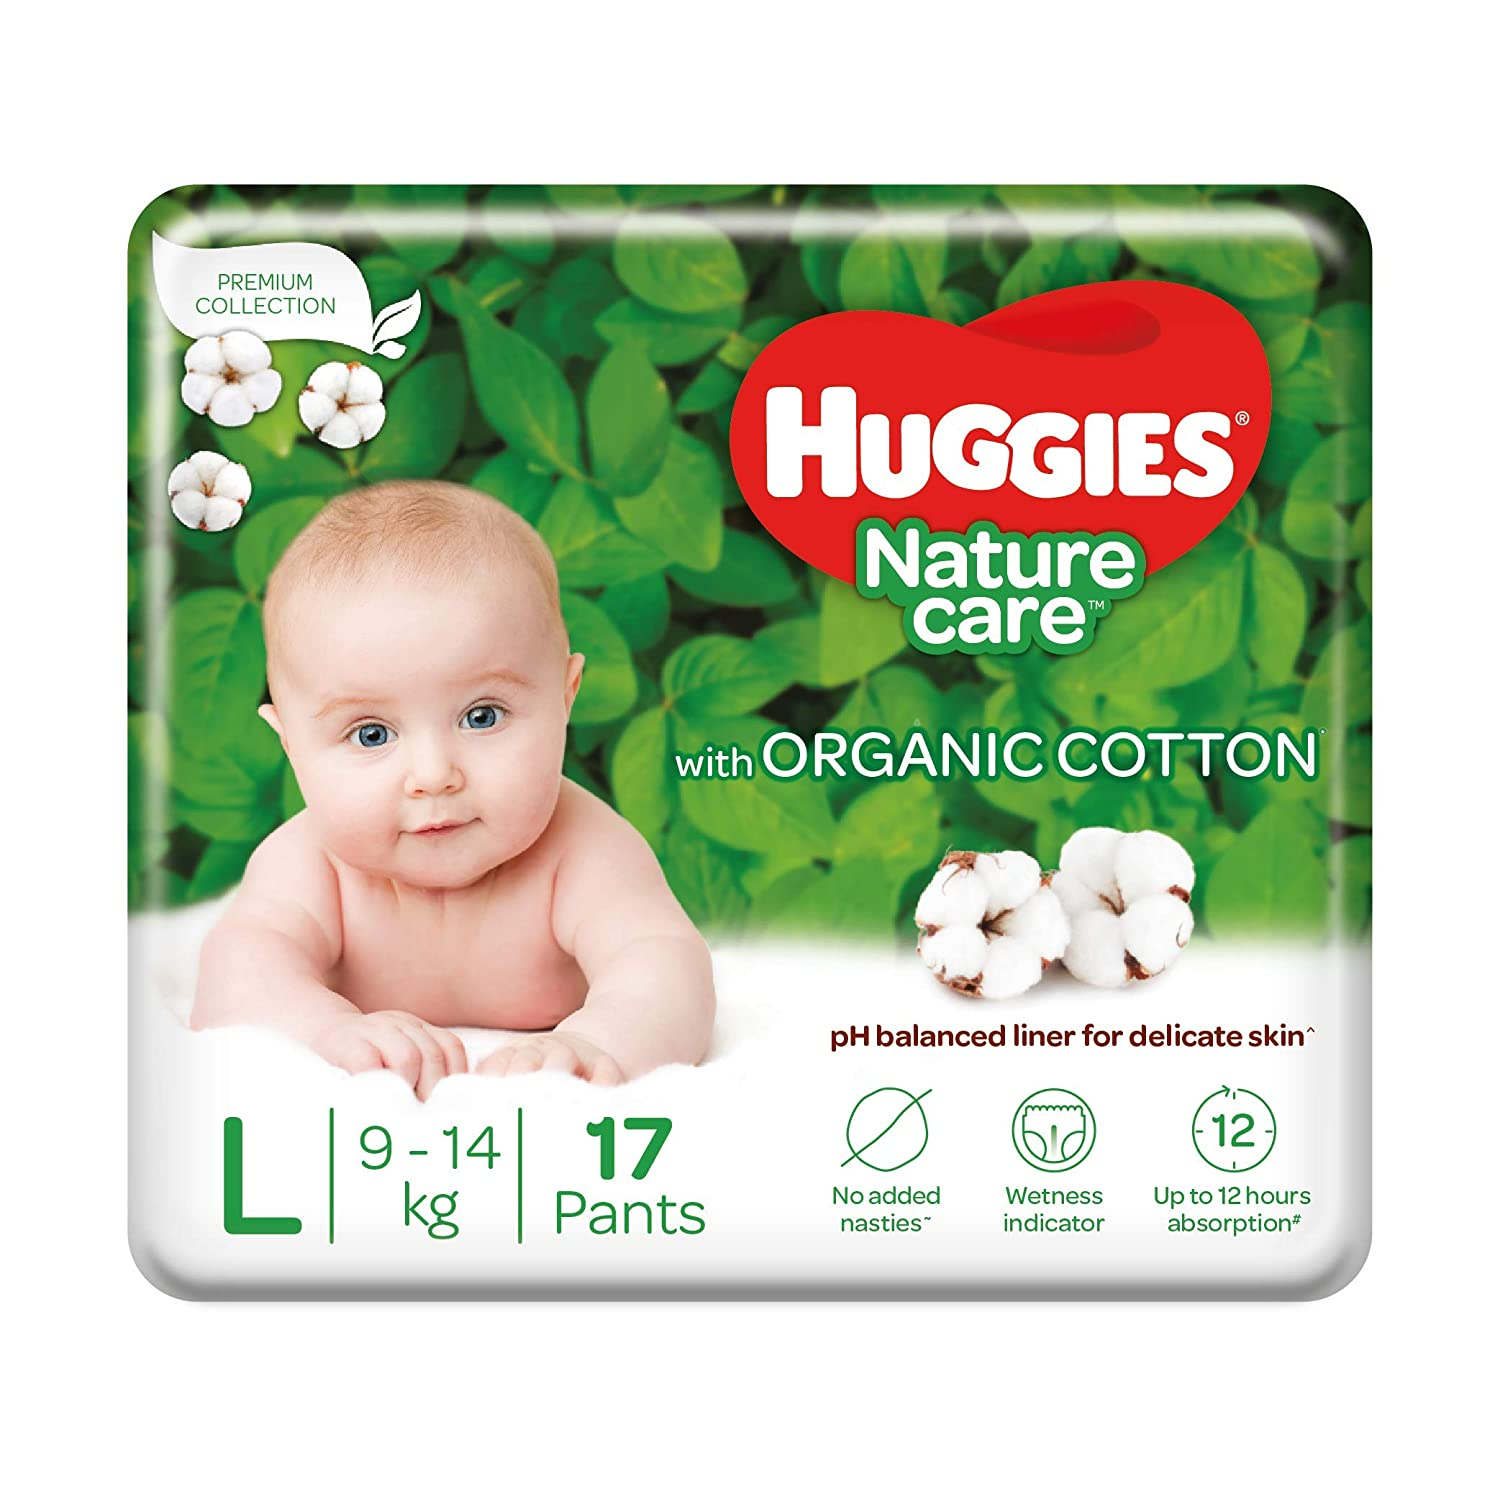 Huggies Nature Care Pants, Large (L) Size Baby Diaper Pants, 17 Count, Nature's gentle protection with organic cotton